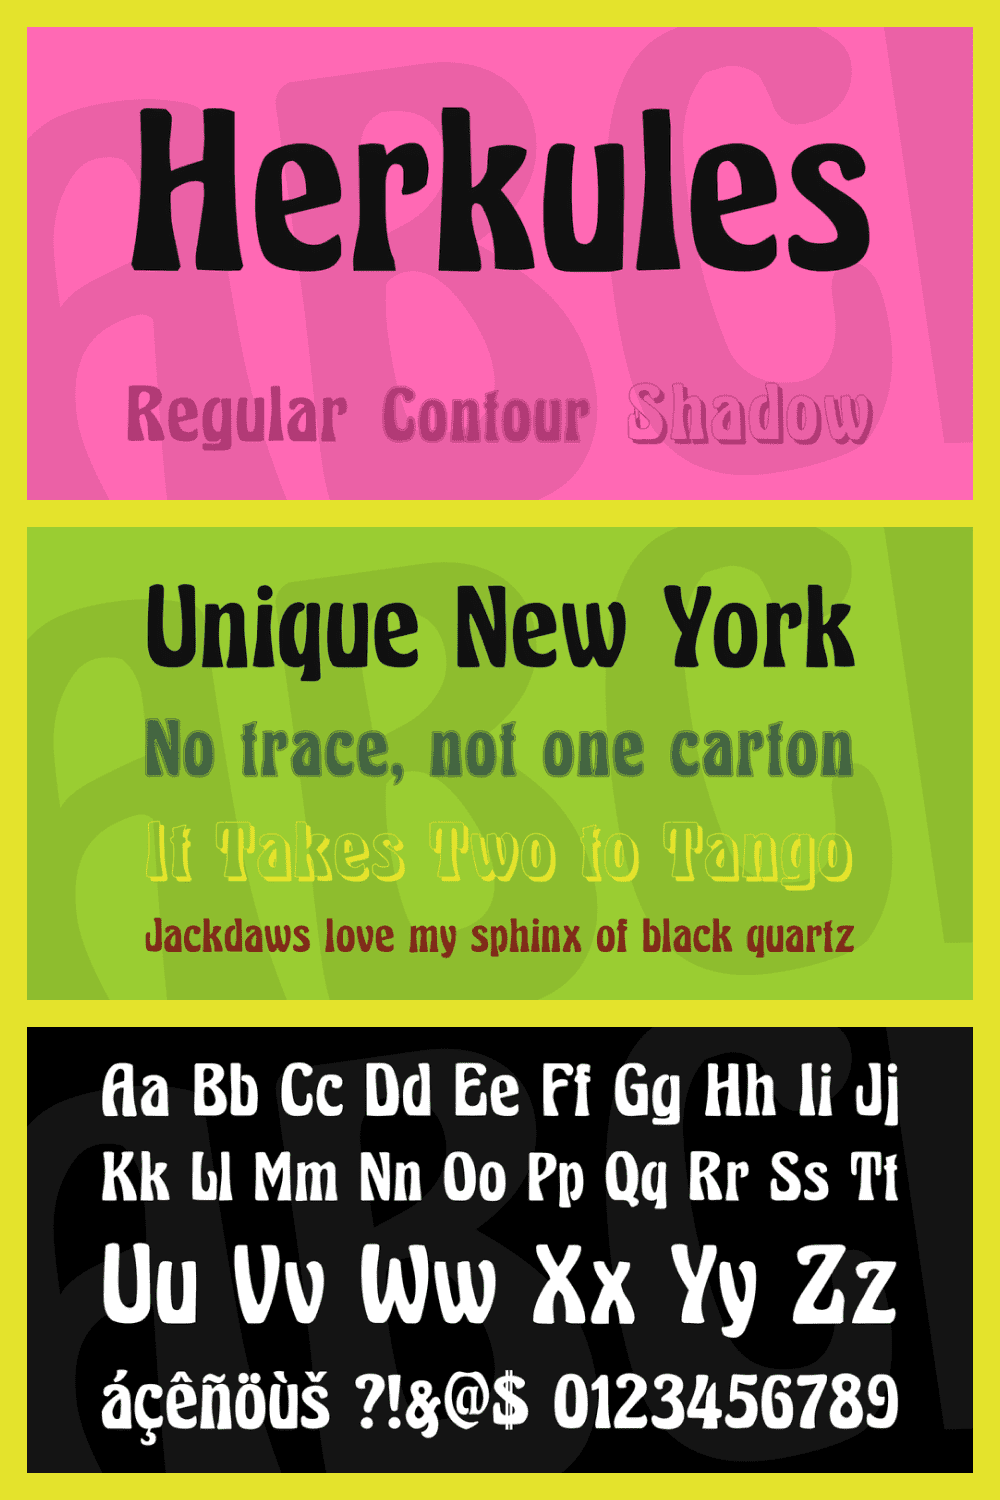 Bold font for real Hercules.